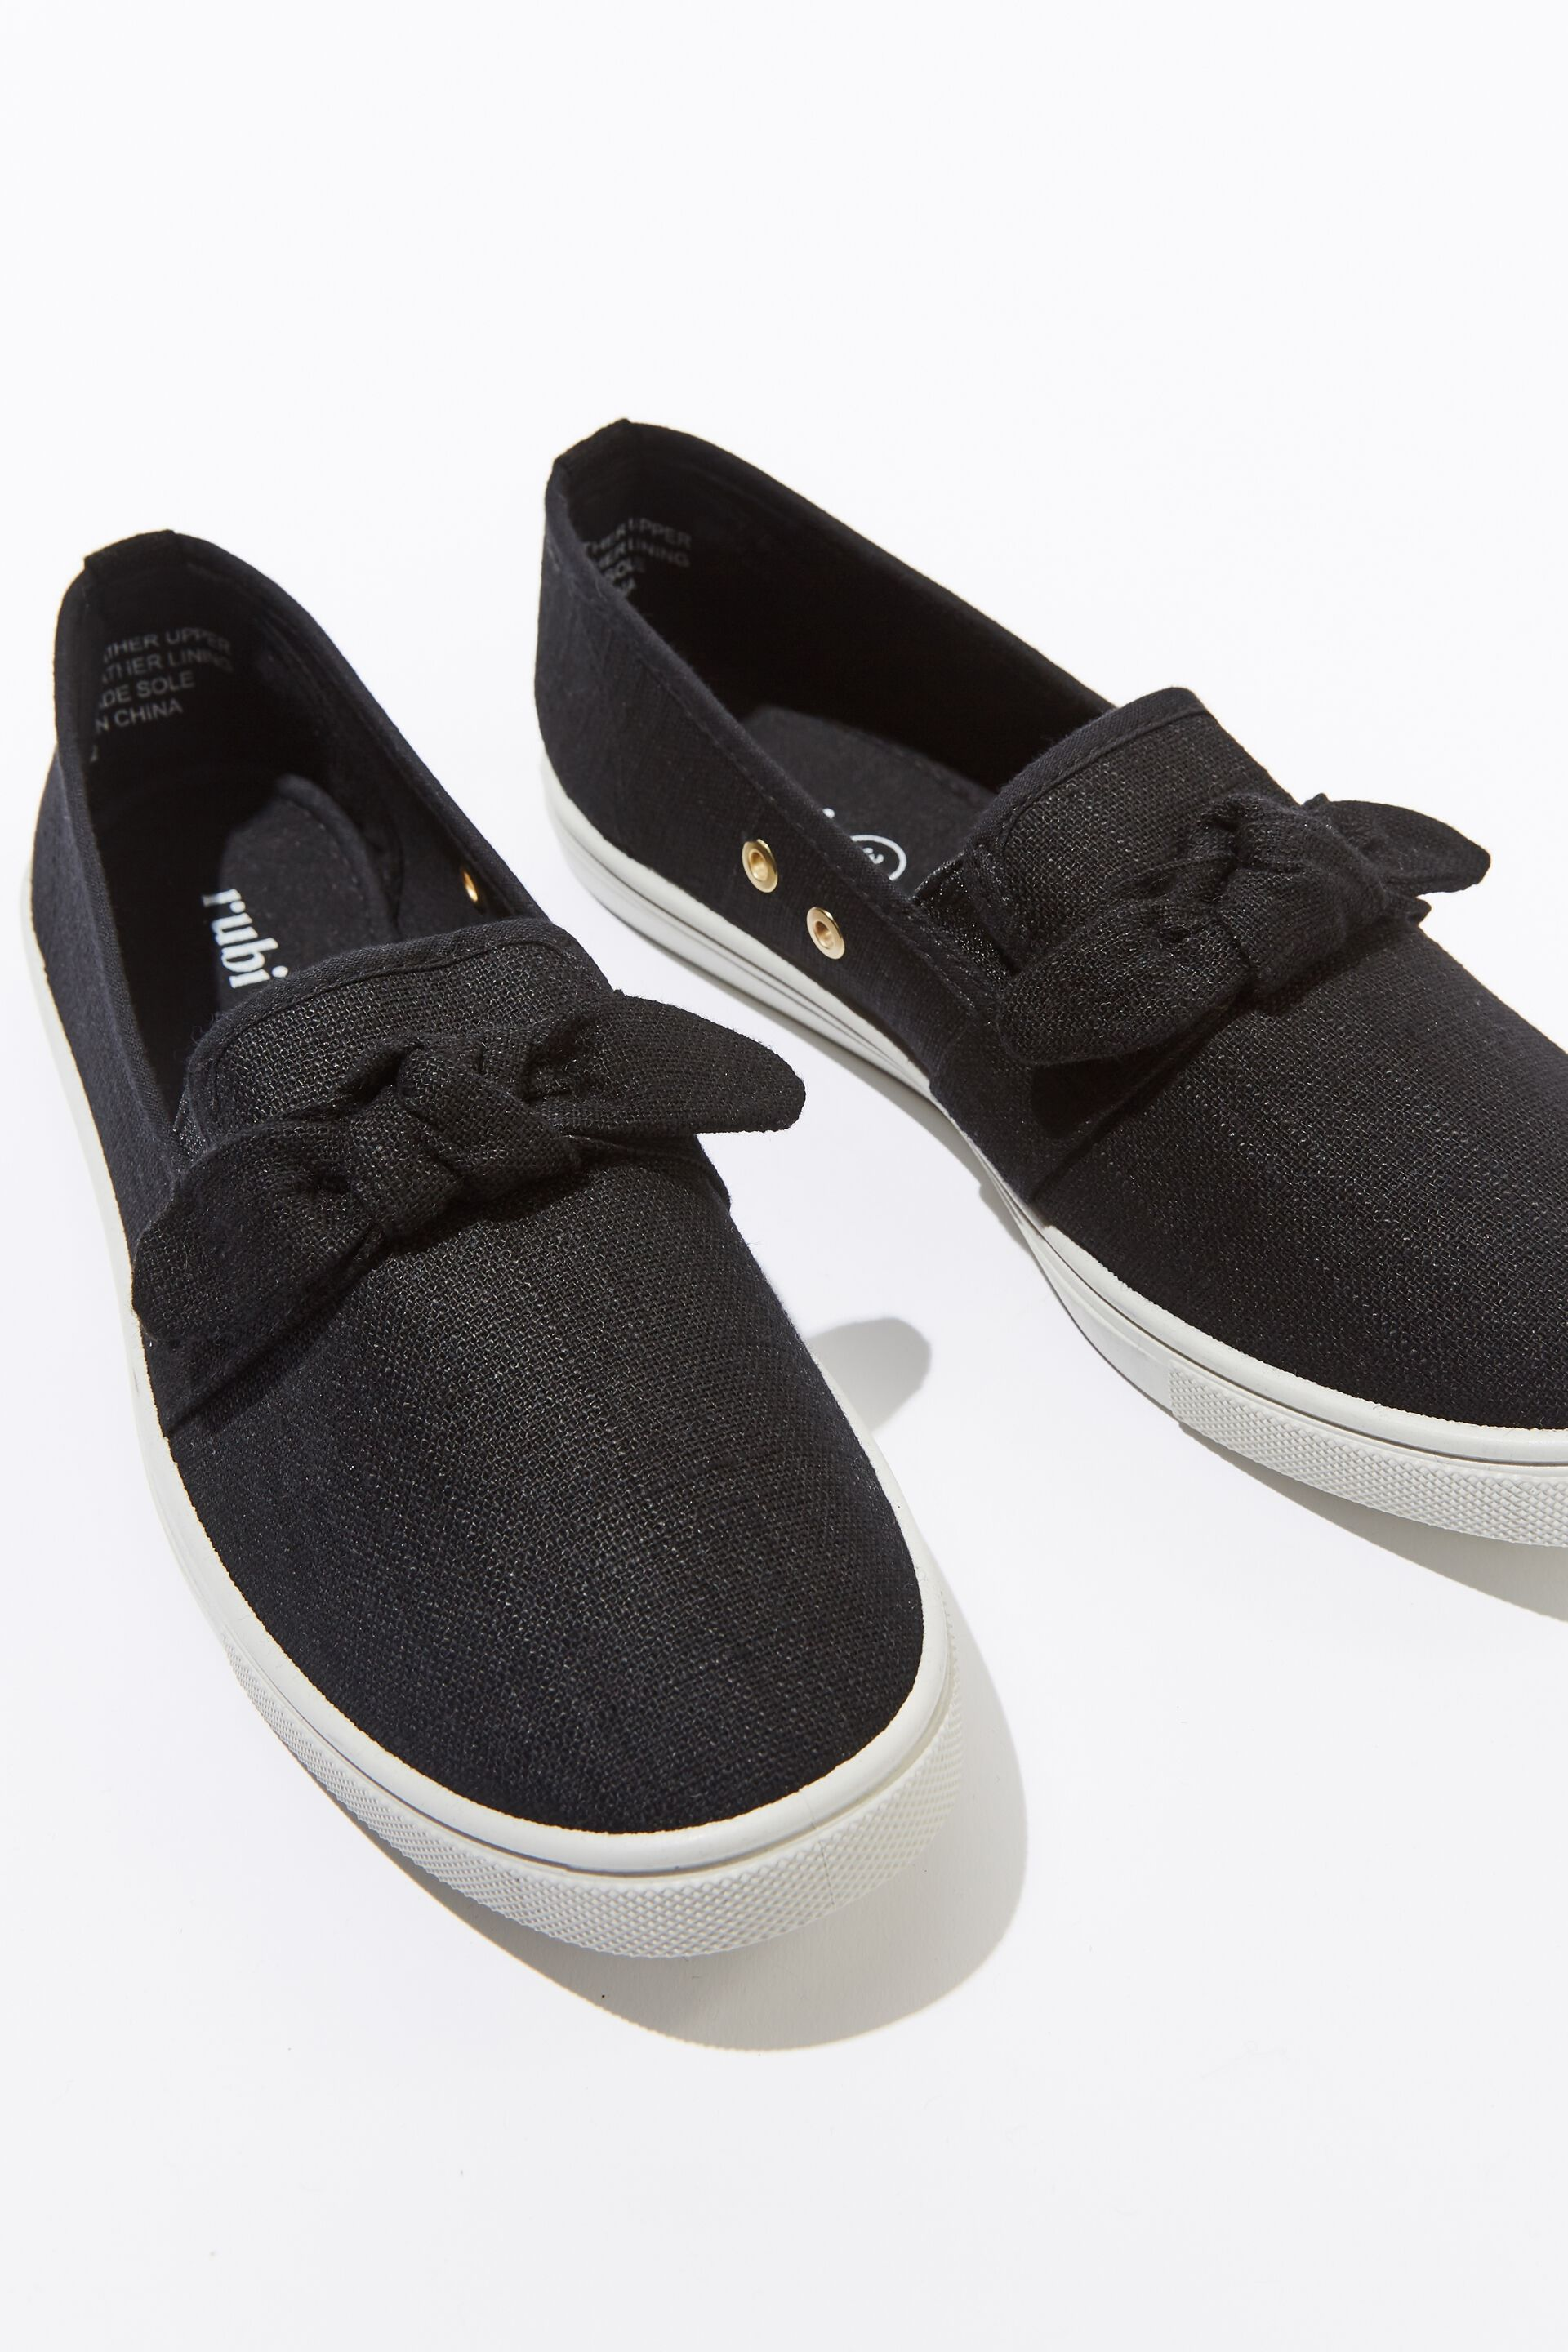 Black And White Slip On Shoes